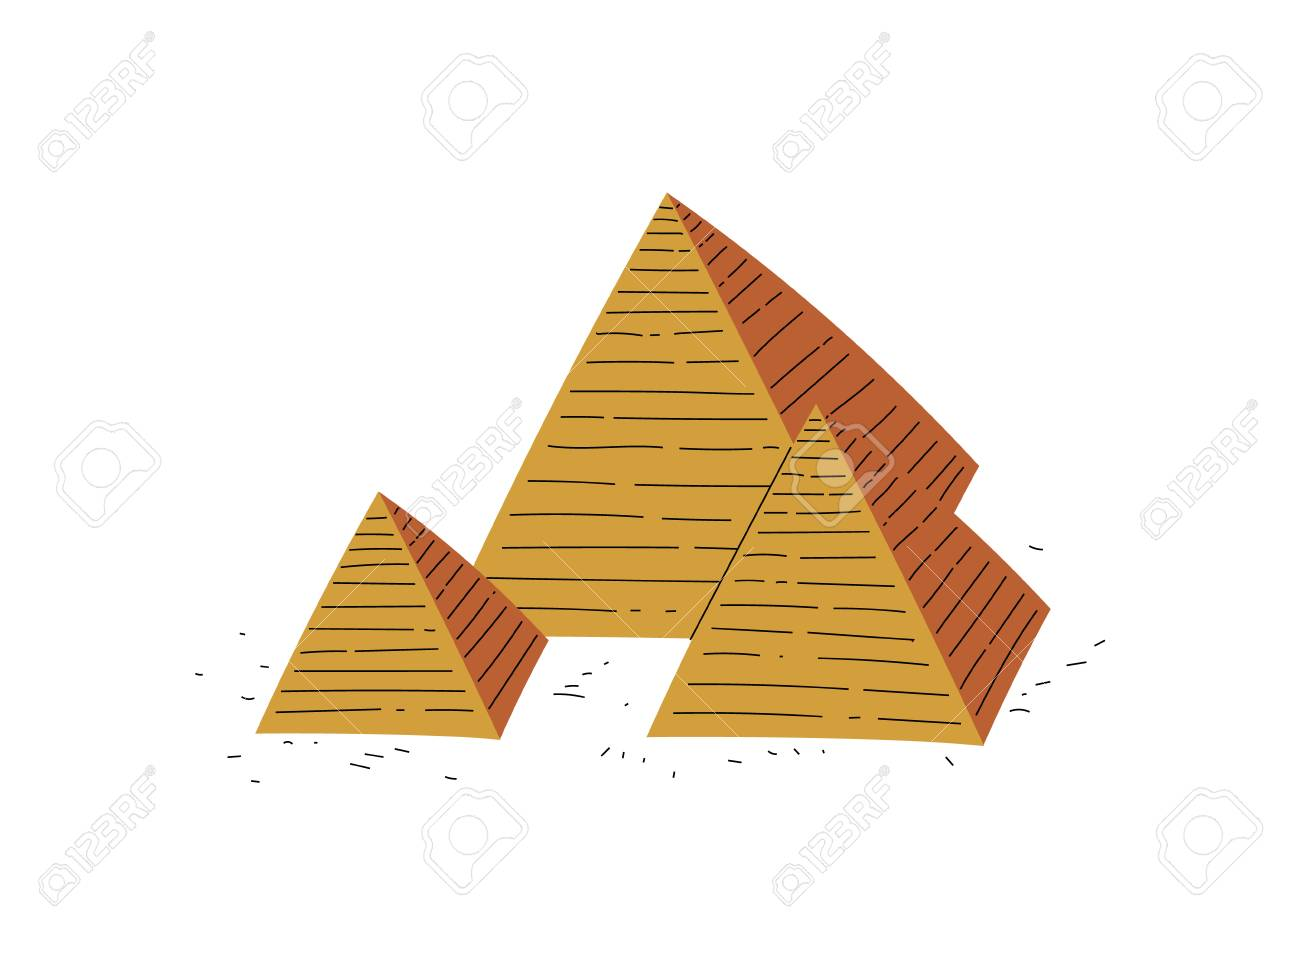 Great Pyramids of Egypt, Traditional Egyptian Culture Symbol Vector Illustration - 120442377